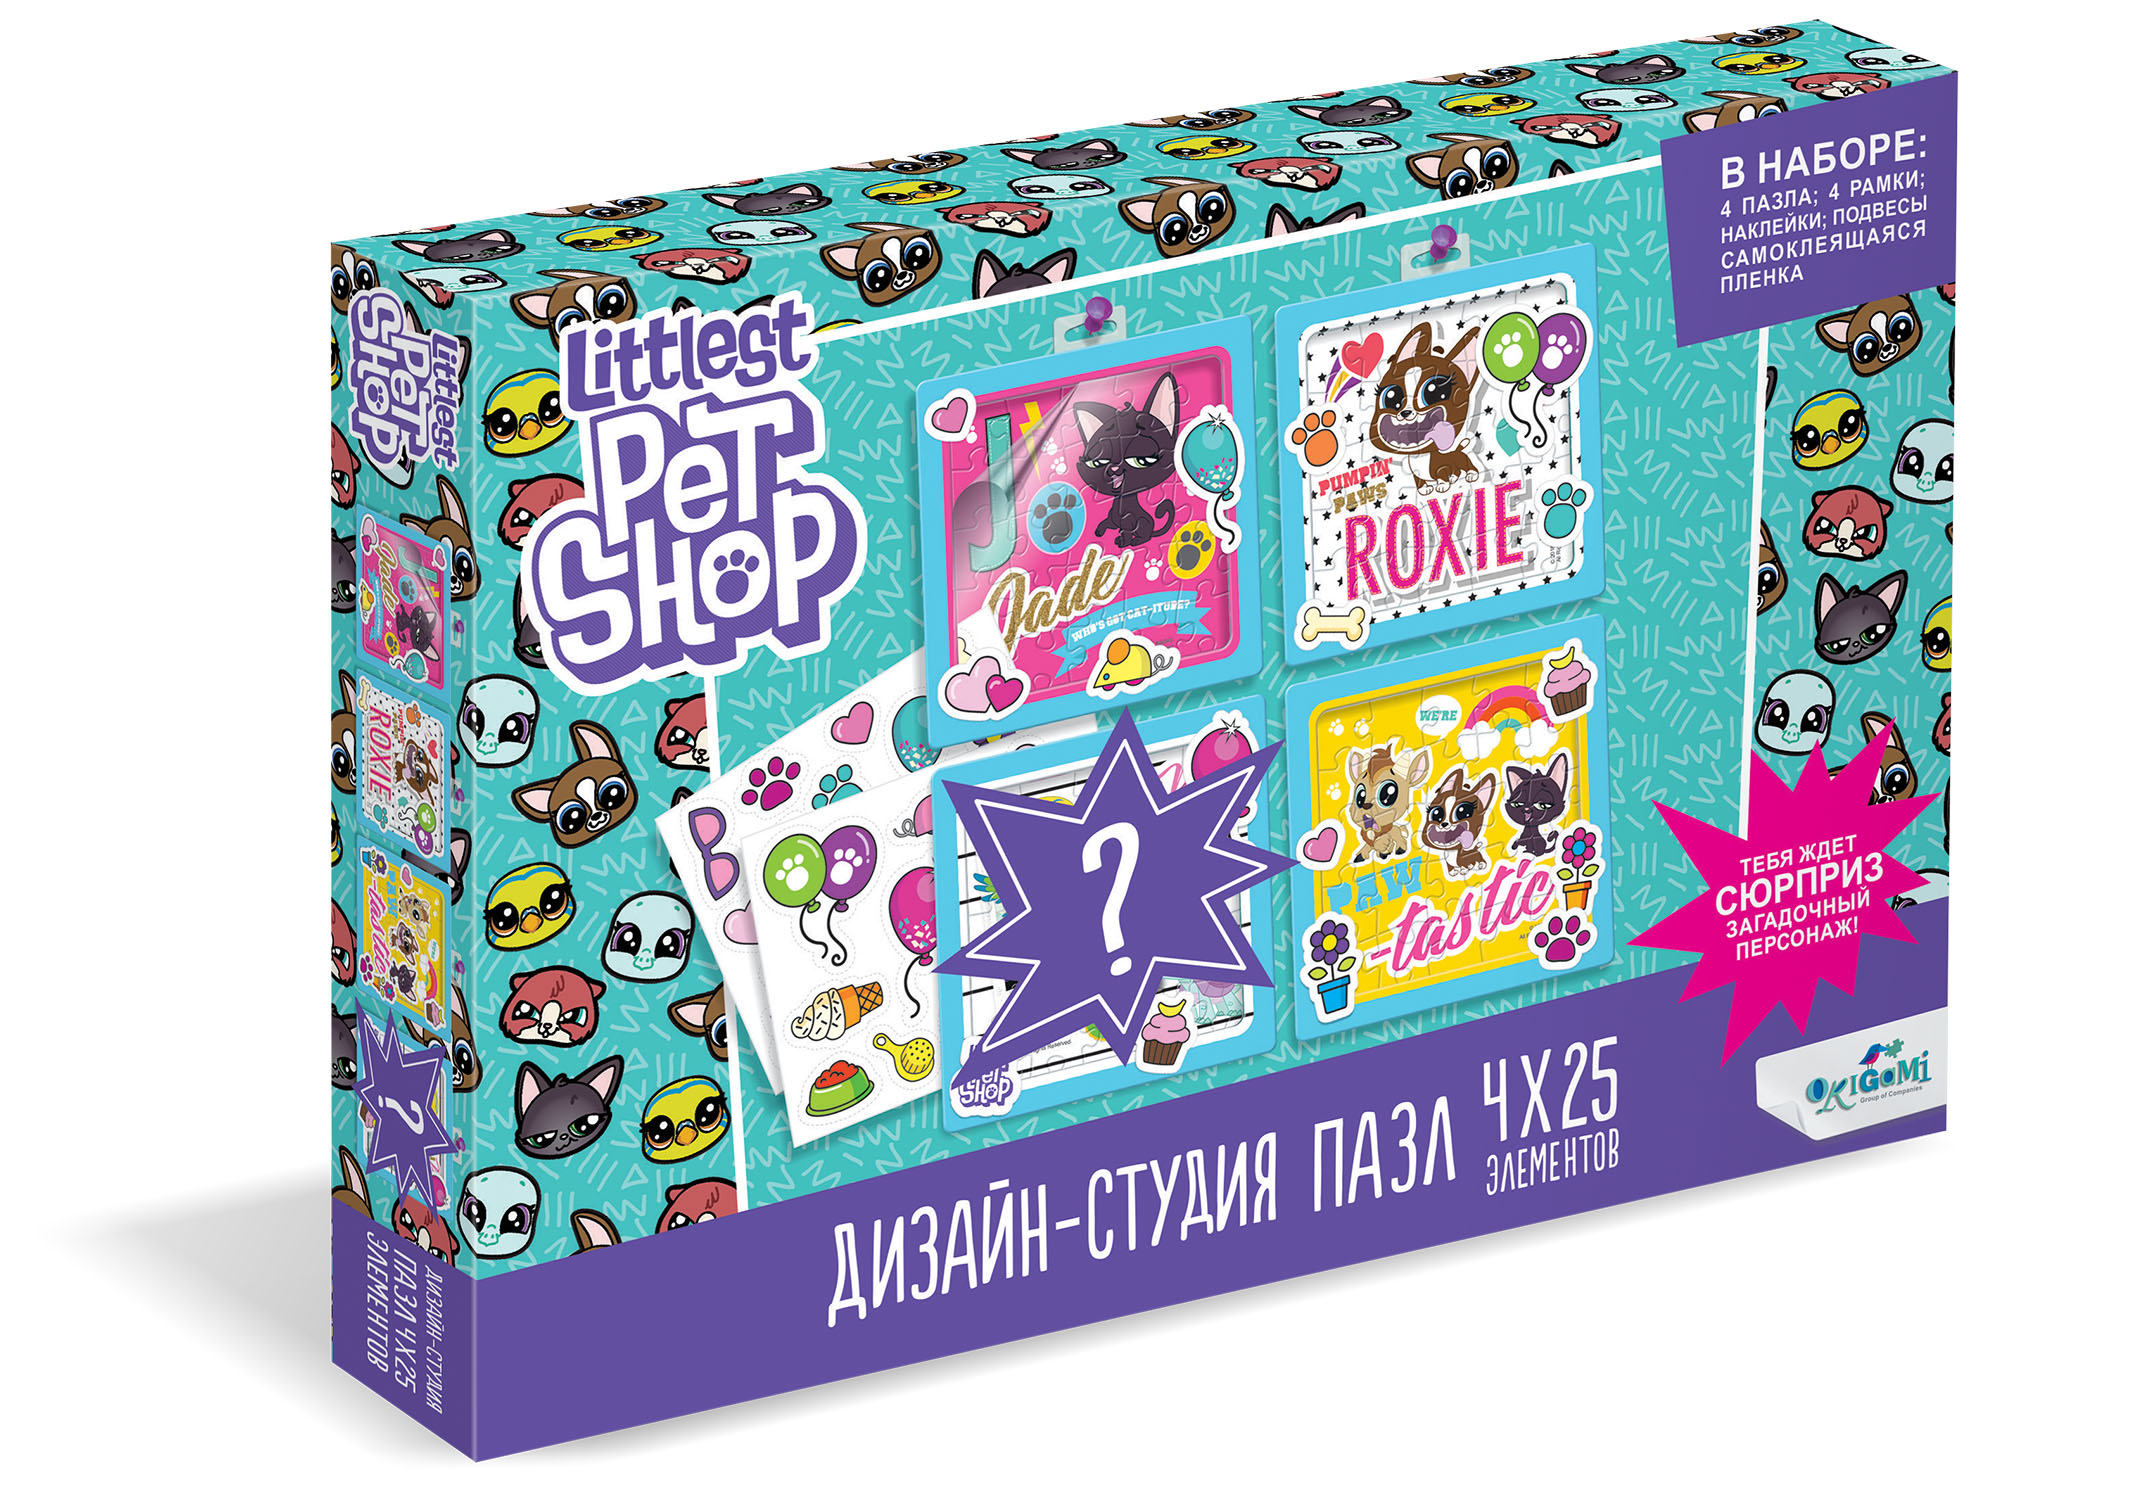 Littlest Pet Shop.Дизайн-студия.Полиптих 4х25.Пушистые герои.04416